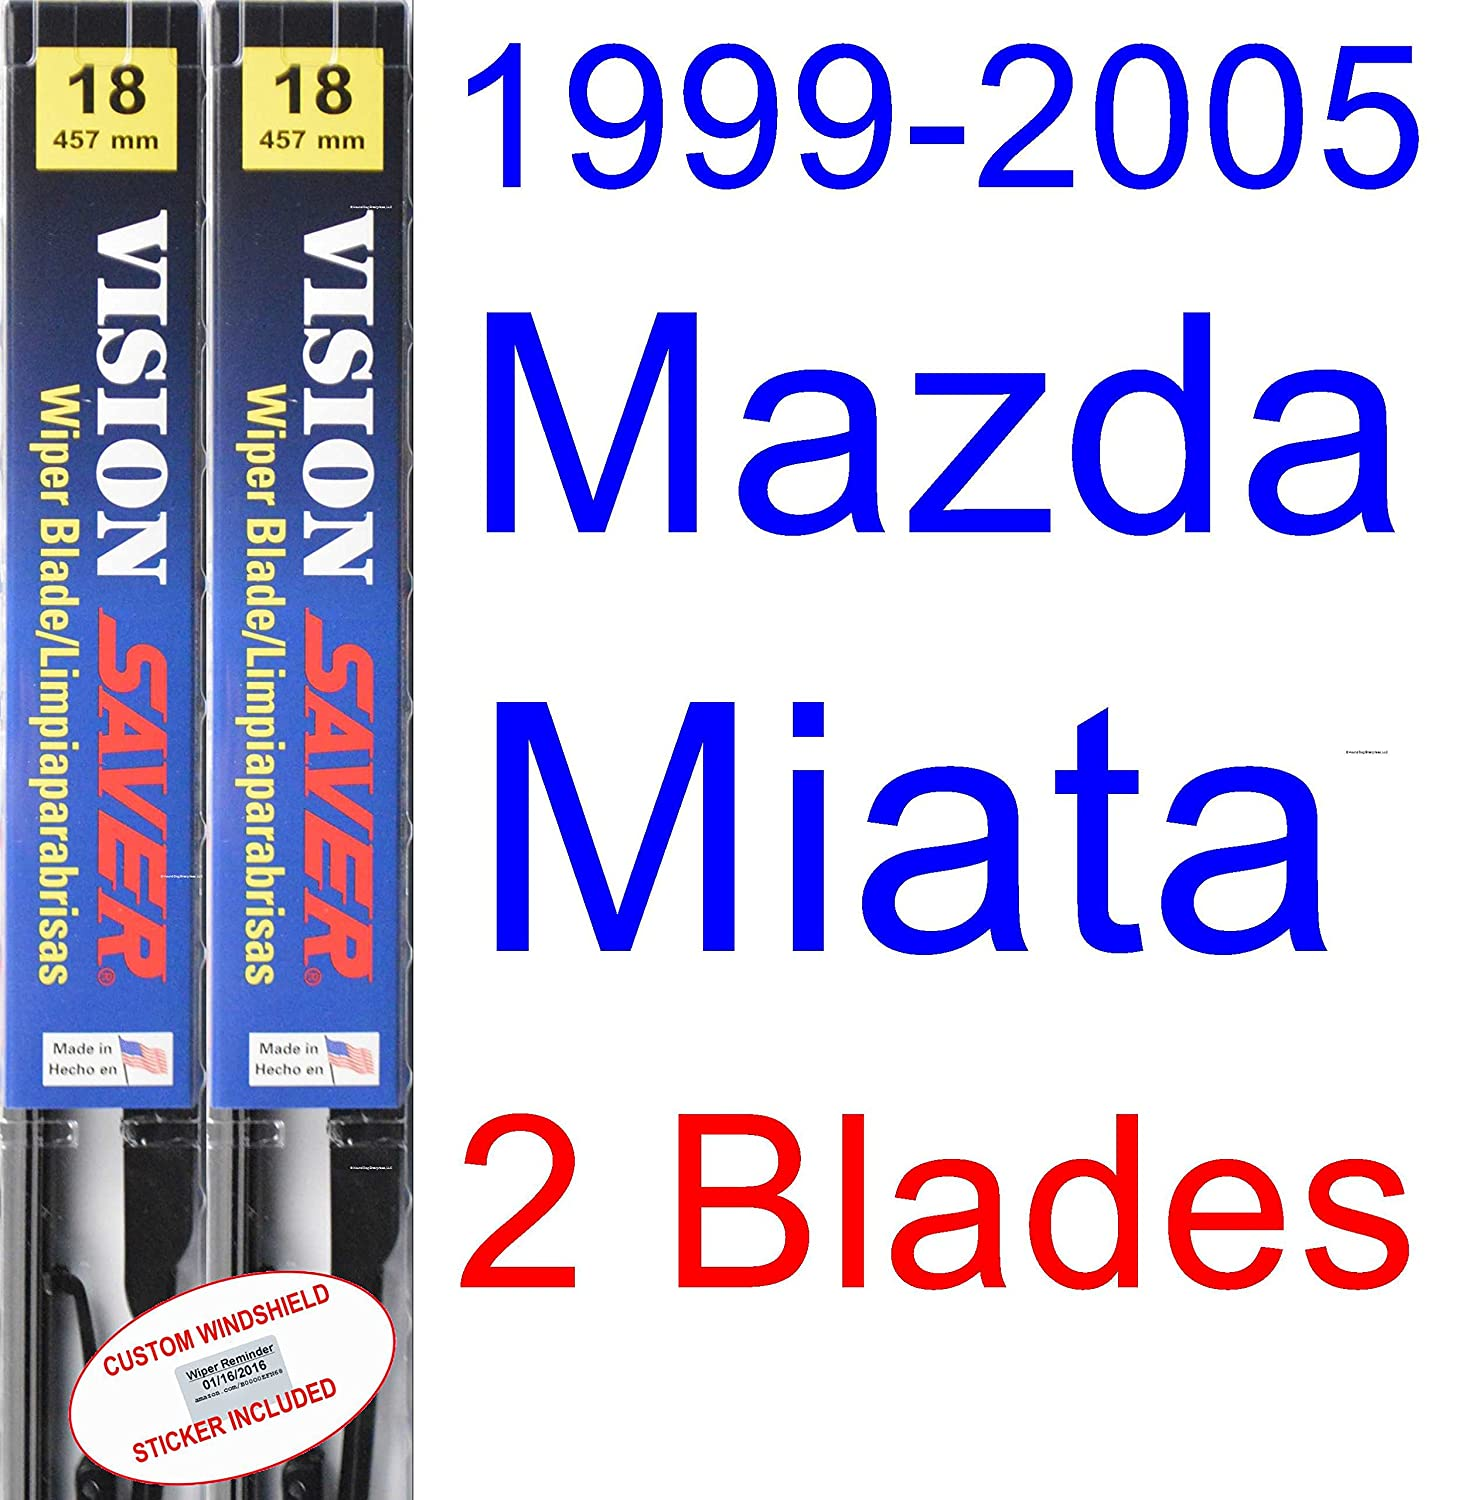 Amazon.com: 1999-2005 Mazda Miata Replacement Wiper Blade Set/Kit (Set of 2 Blades) (Saver Automotive Products-Vision Saver) (2000,2001,2002,2003,2004): ...